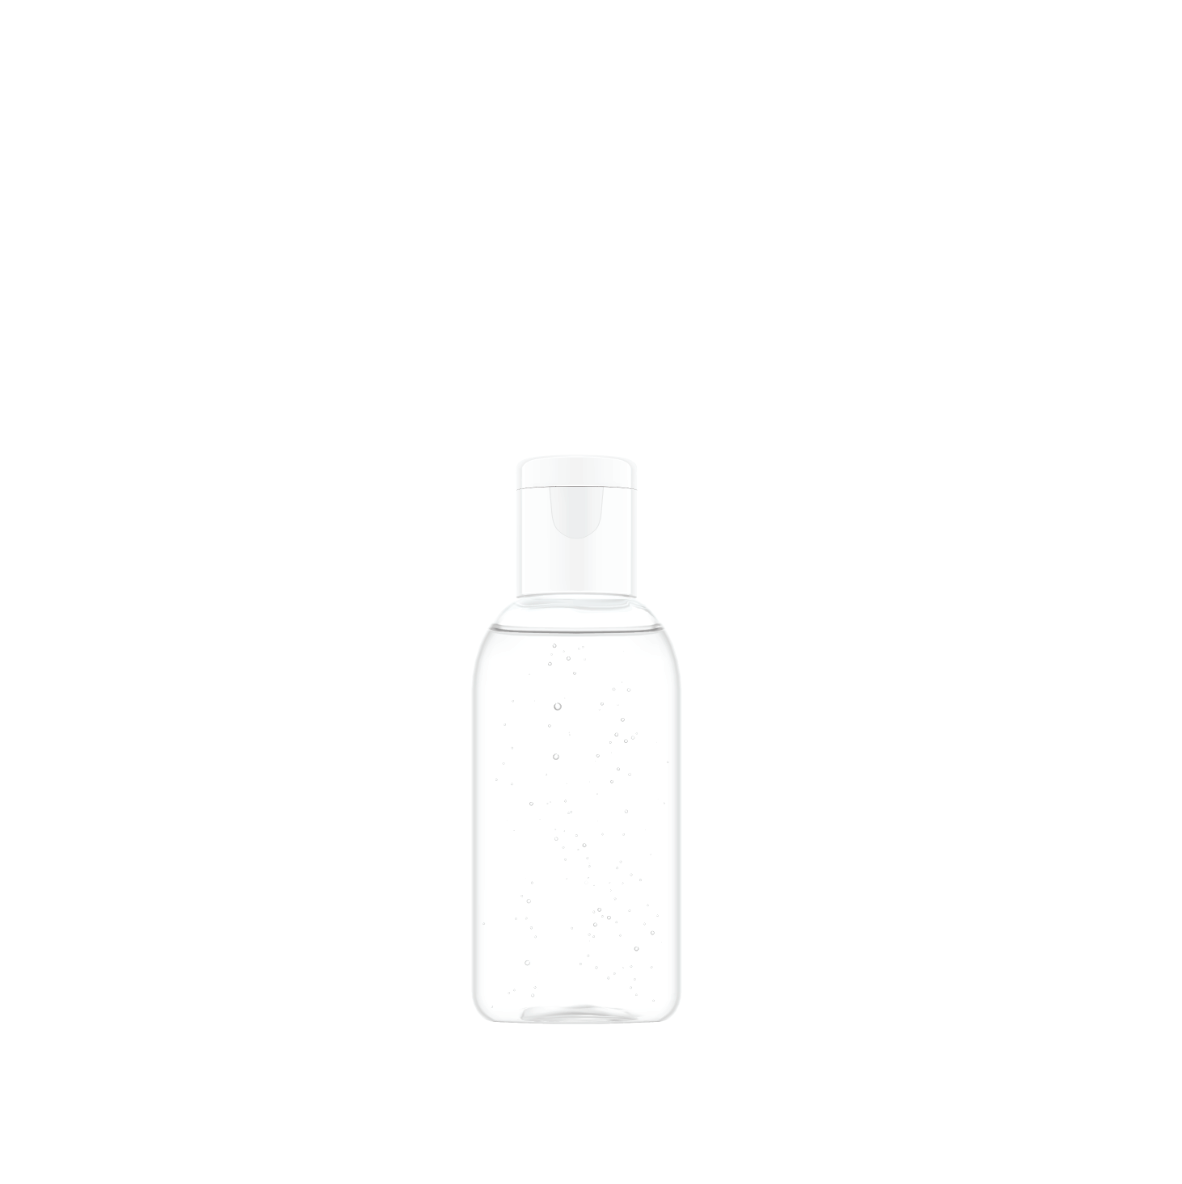 Sanitiser - 100ml